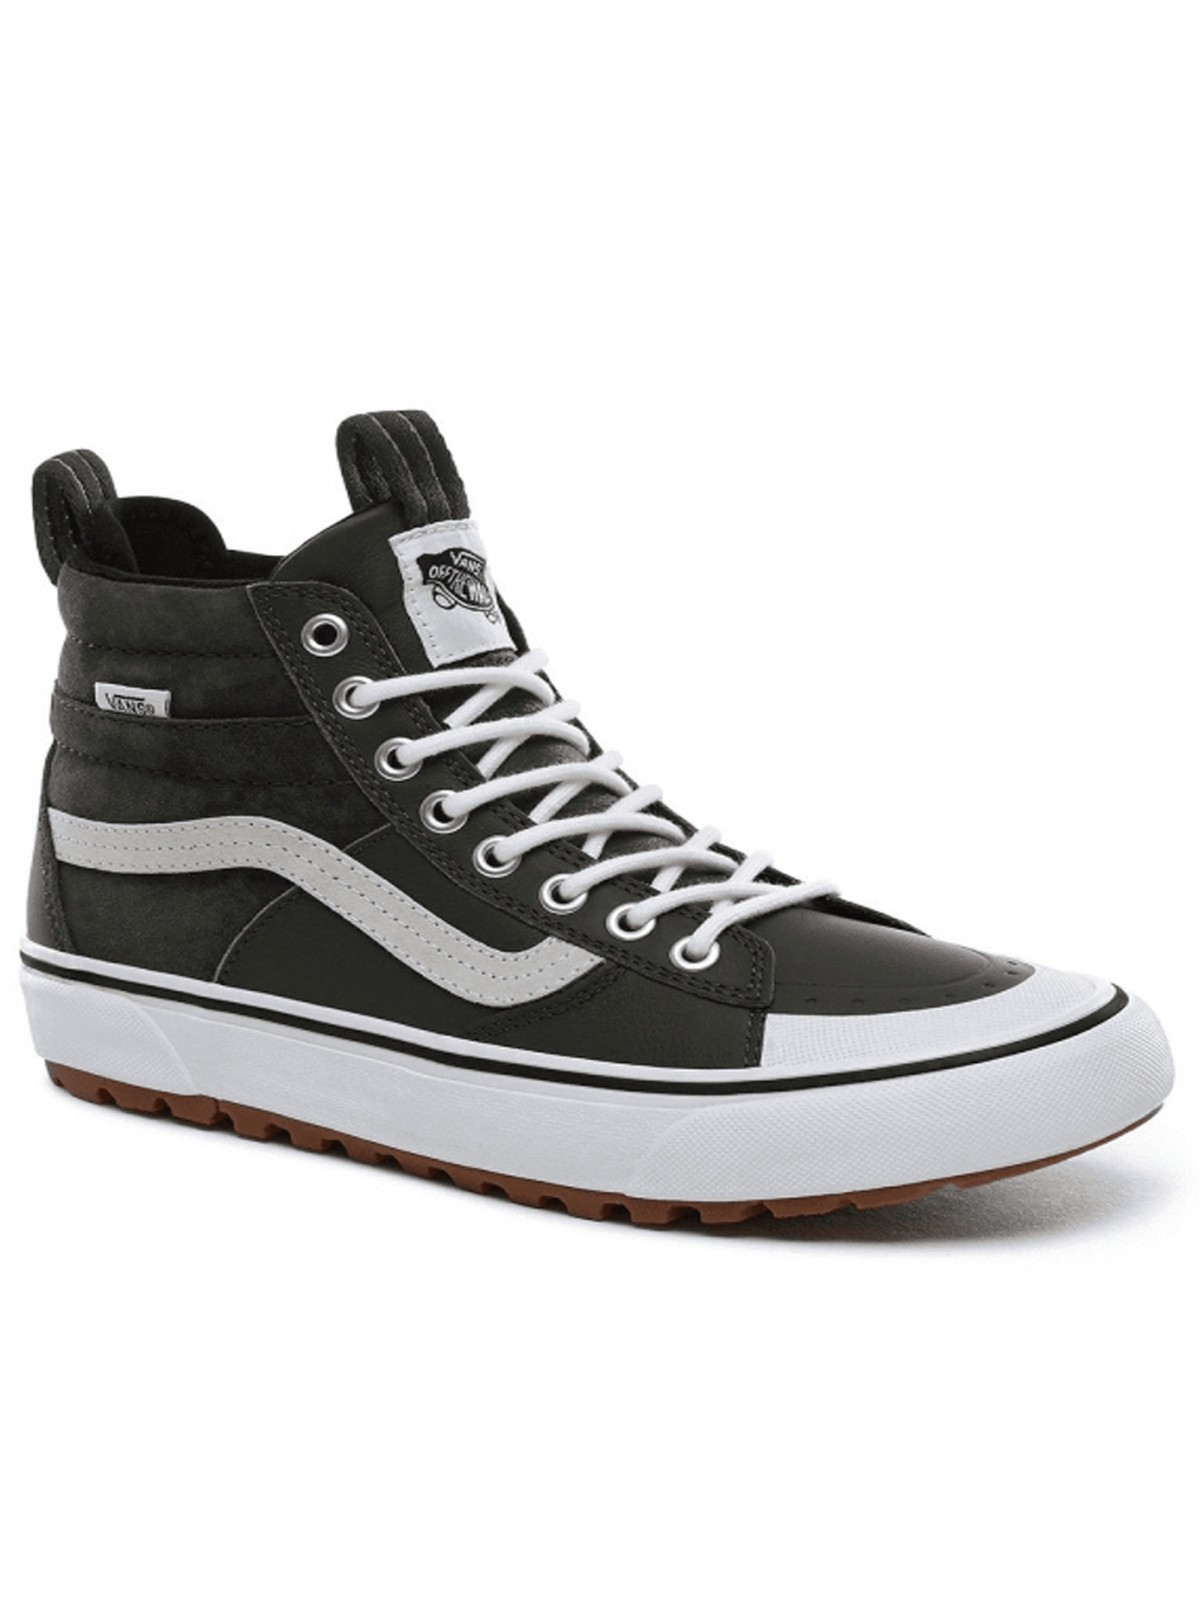 Vans SK8Mte suède Forest night